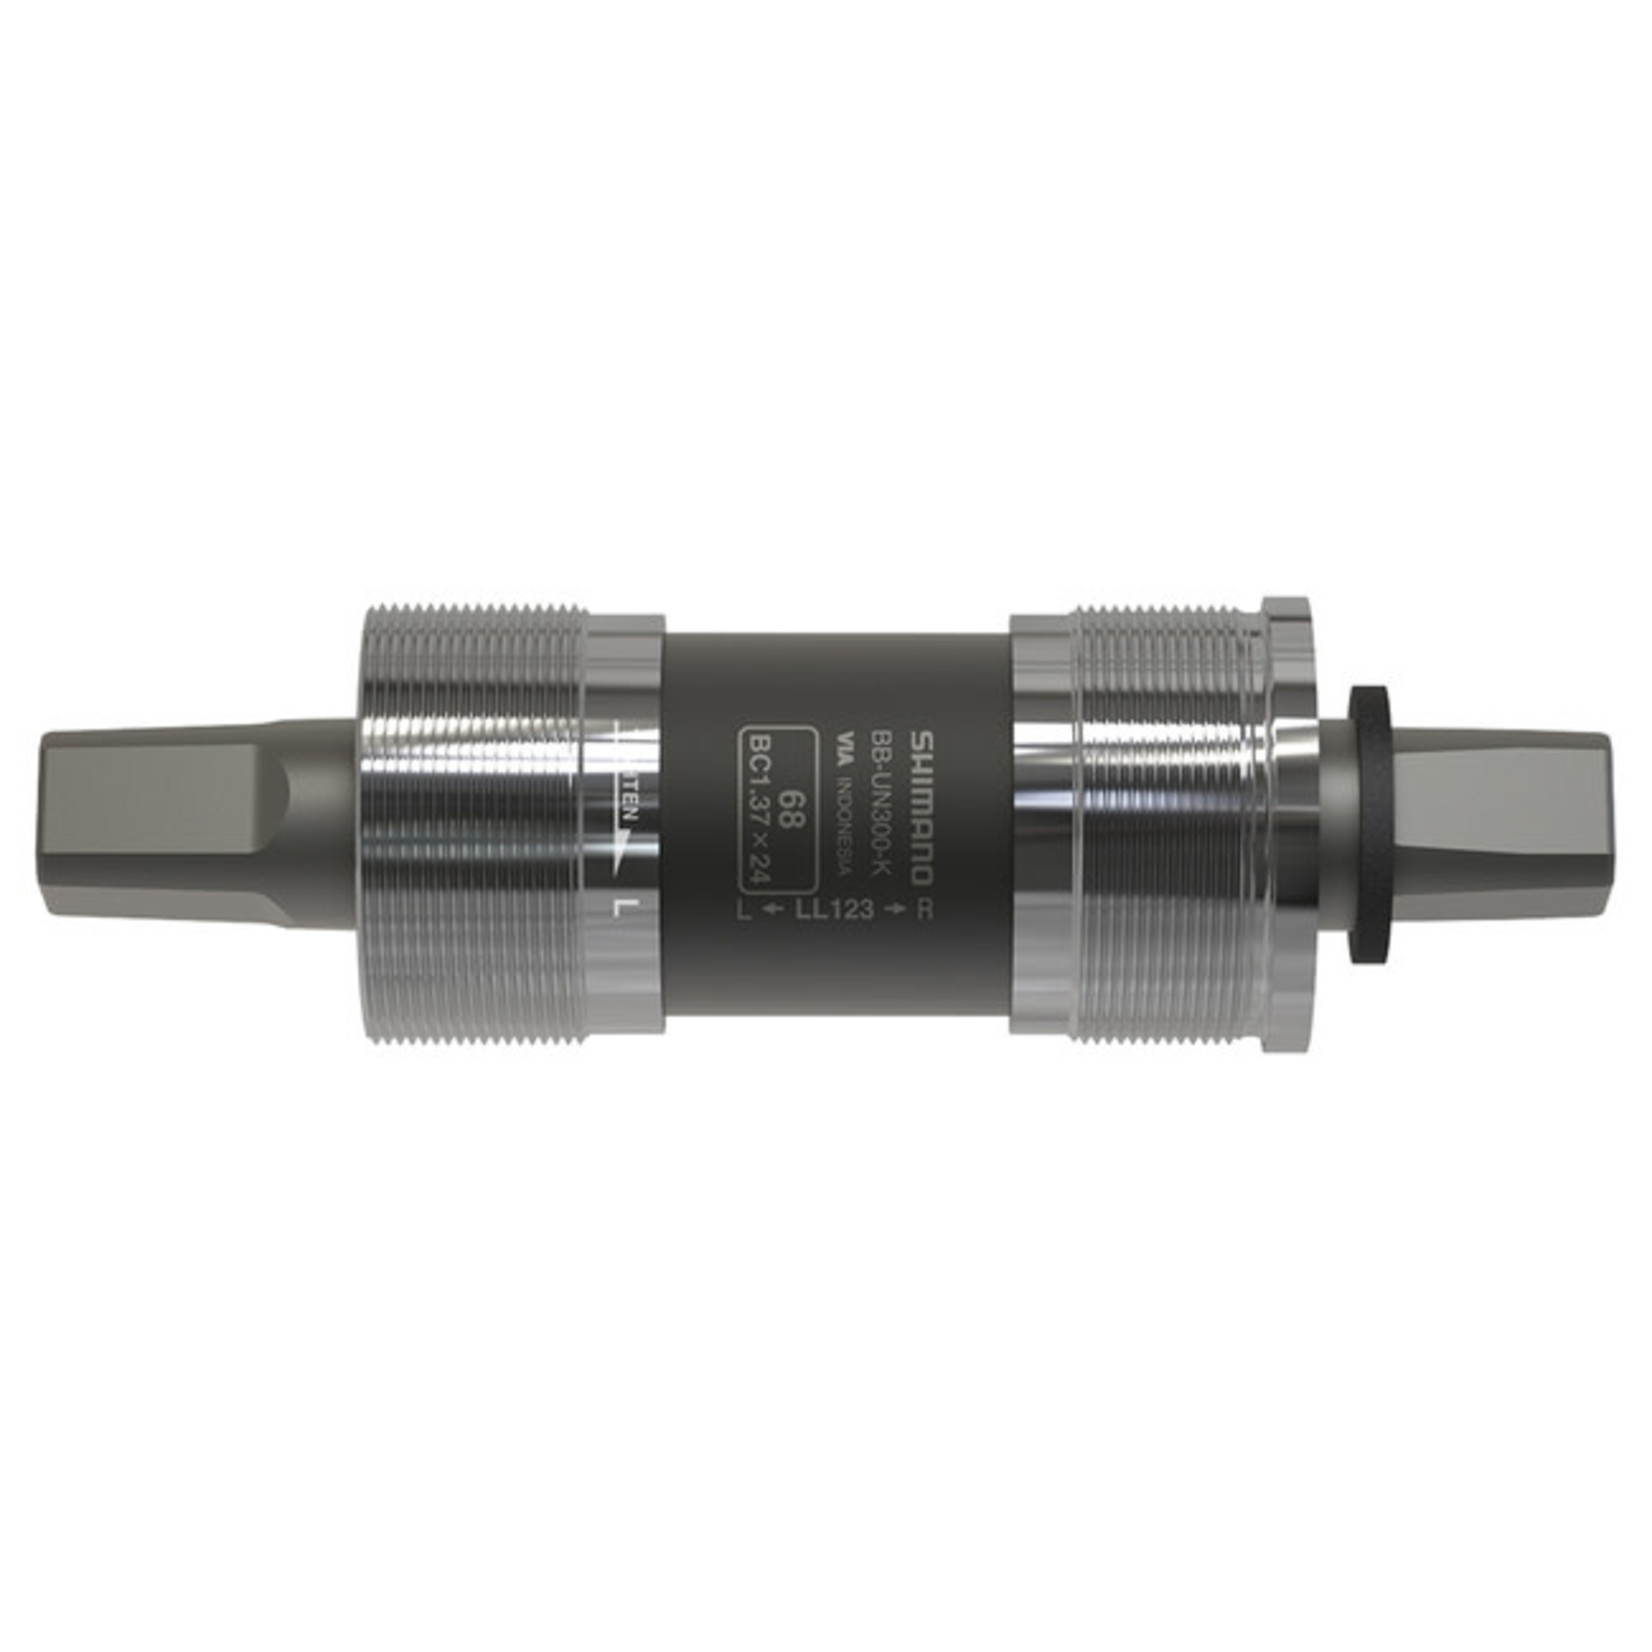 Shimano BOTTOM BRACKET, BB-UN300-K, FOR CHAINCASE, SPINDLE SQUARE